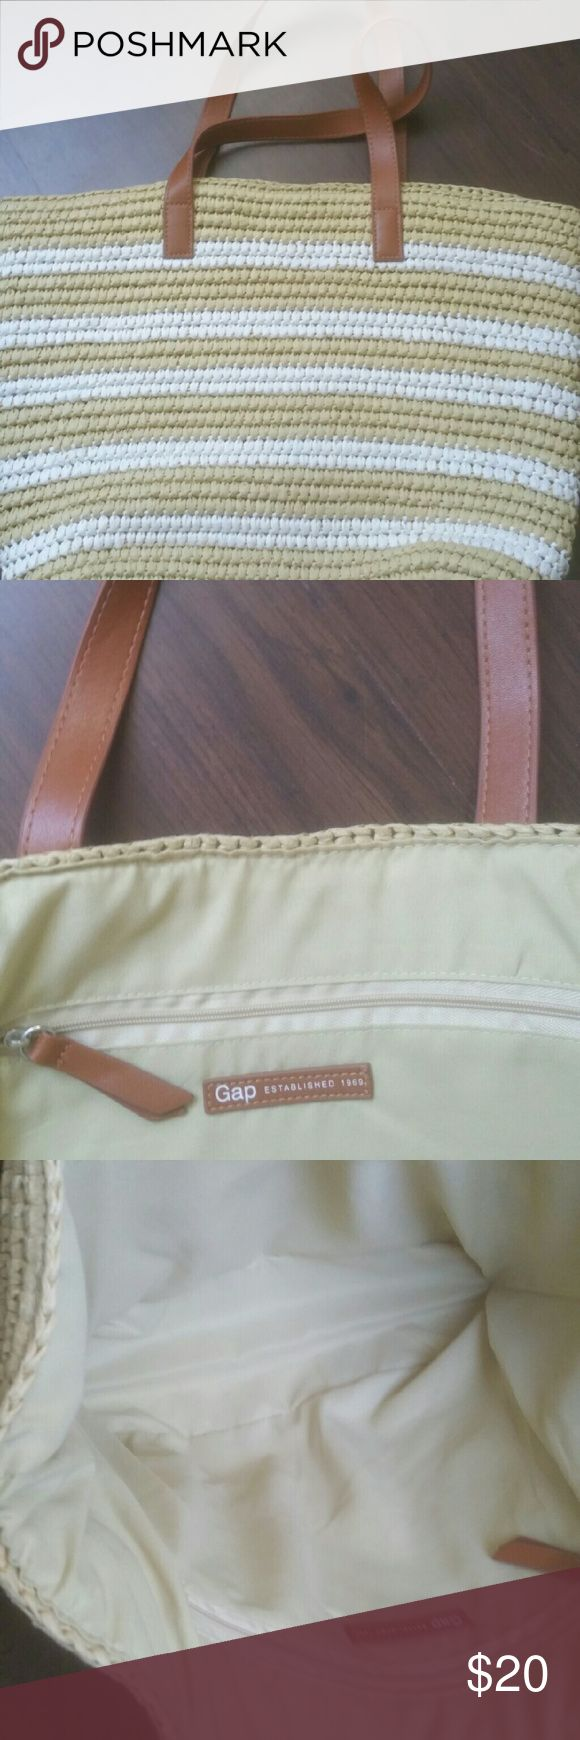 Gap straw bag Gap straw bag with leather handles.  Never used!!! gap Bags Totes